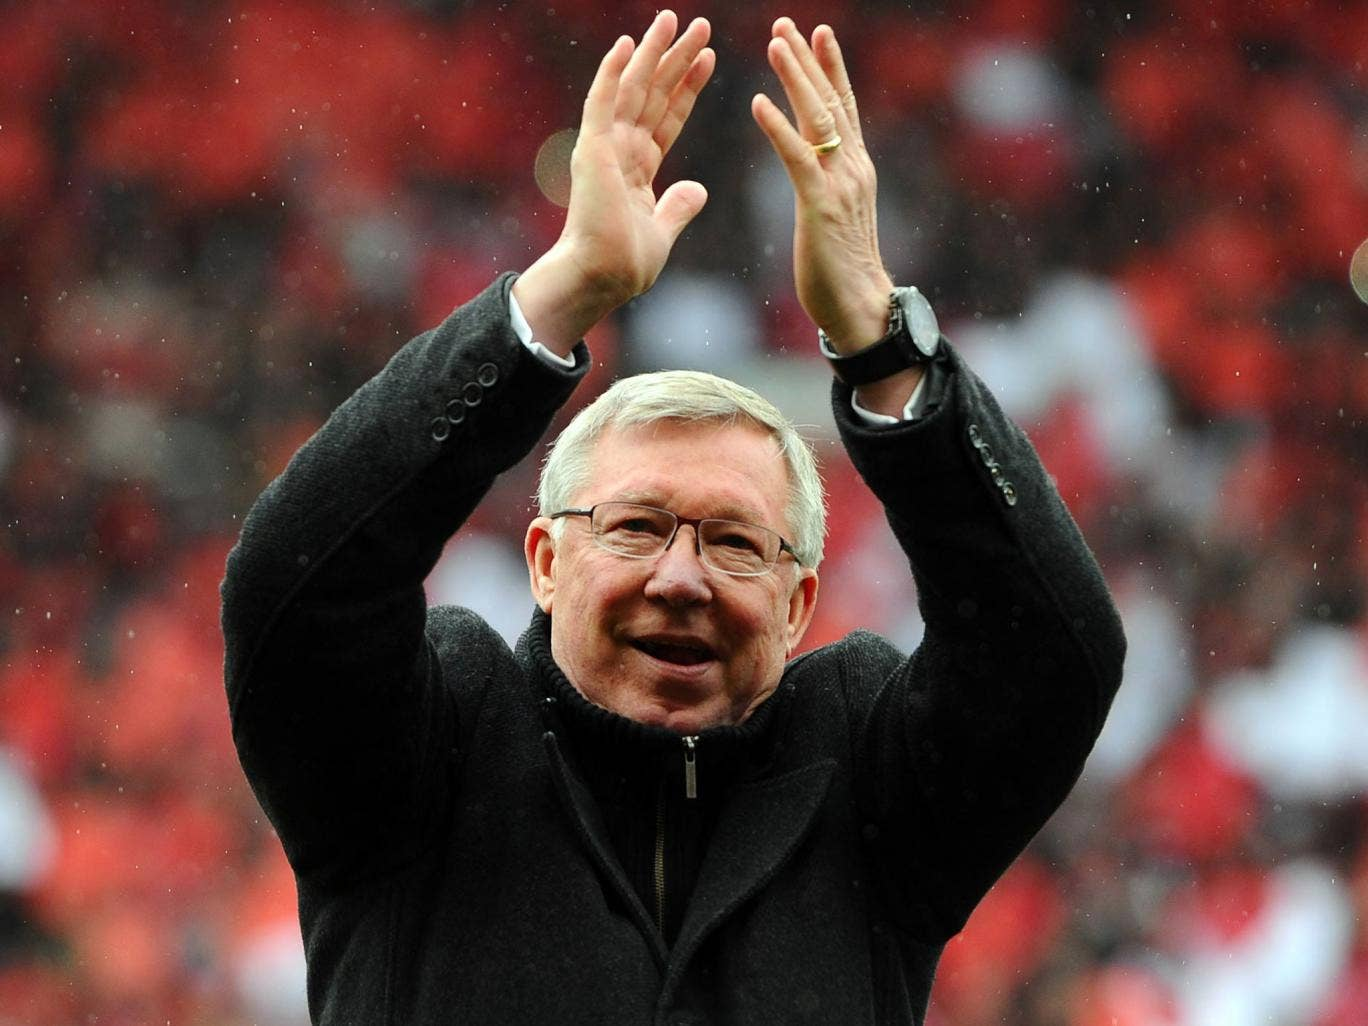 Manchester United's Scottish manager Alex Ferguson applauds as he arrives on the field (Andrew Yates/AFP/Getty Images)